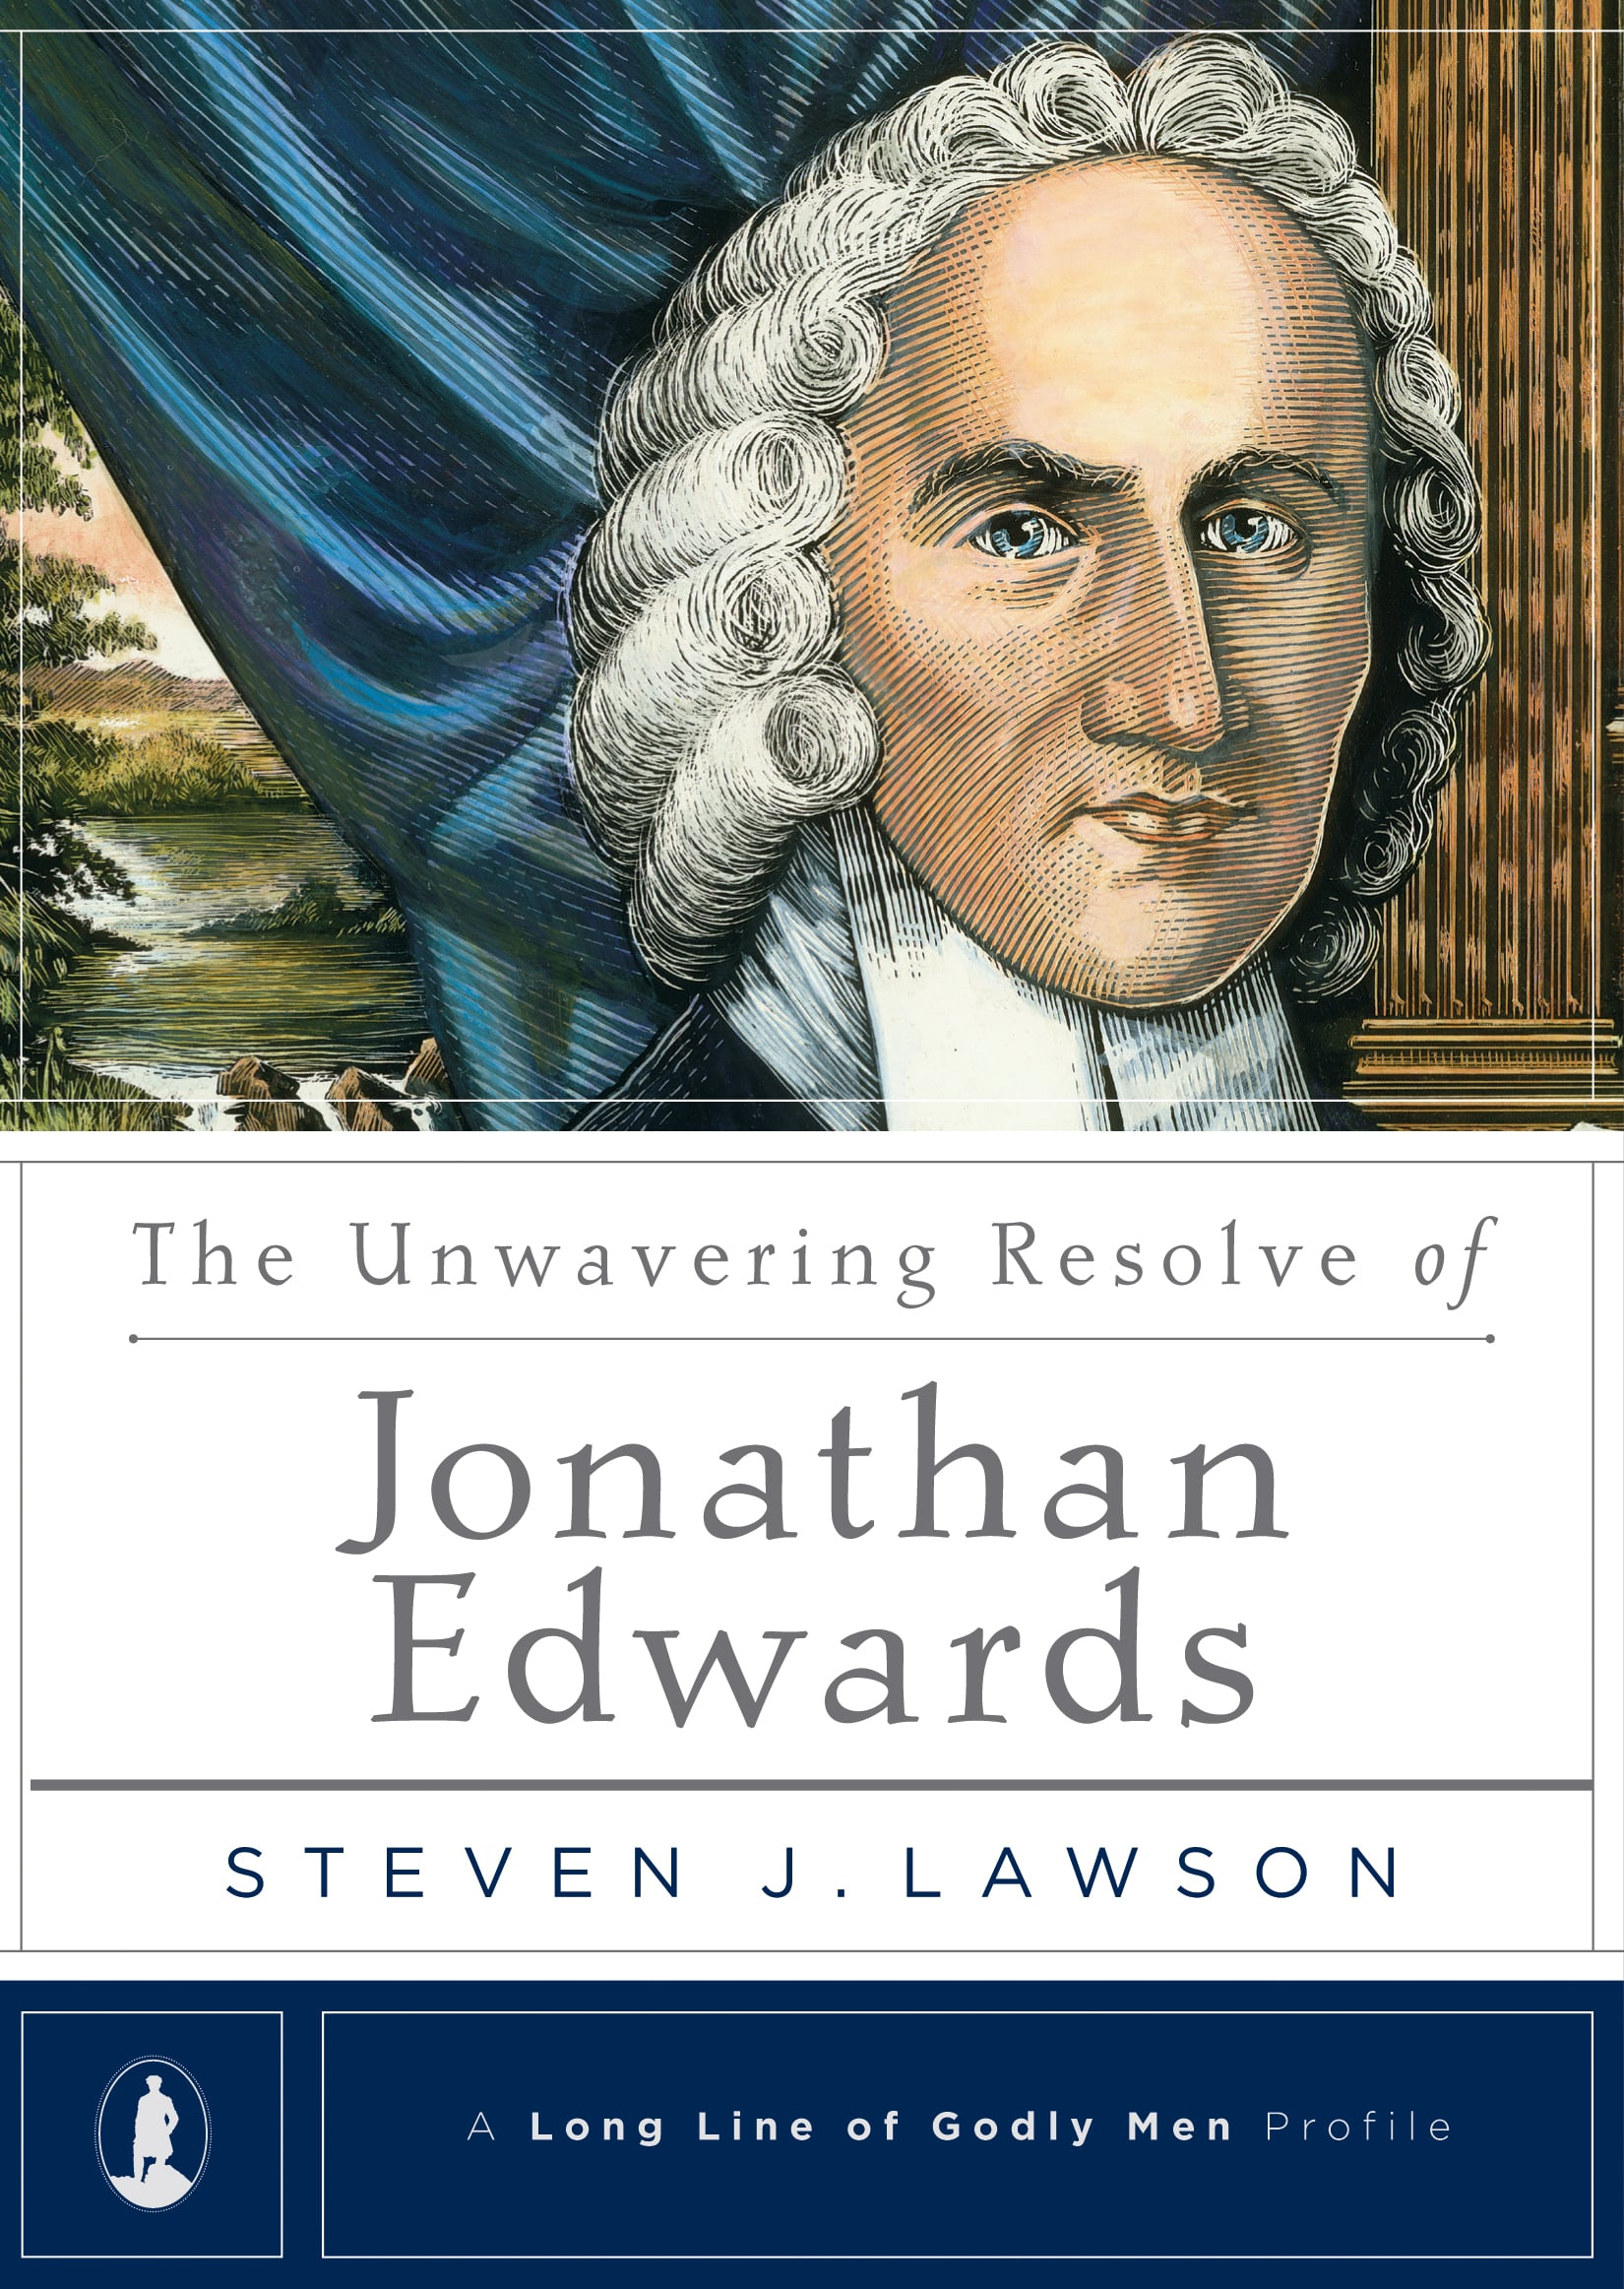 jonathan edwards writings Recent years have seen a flow of fresh and stimulating scholarly works devoted to the thought, influence, and relevance of jonathan edwards, whom perry miller called 'the greatest philosopher-theologian yet to grace the american scene'.